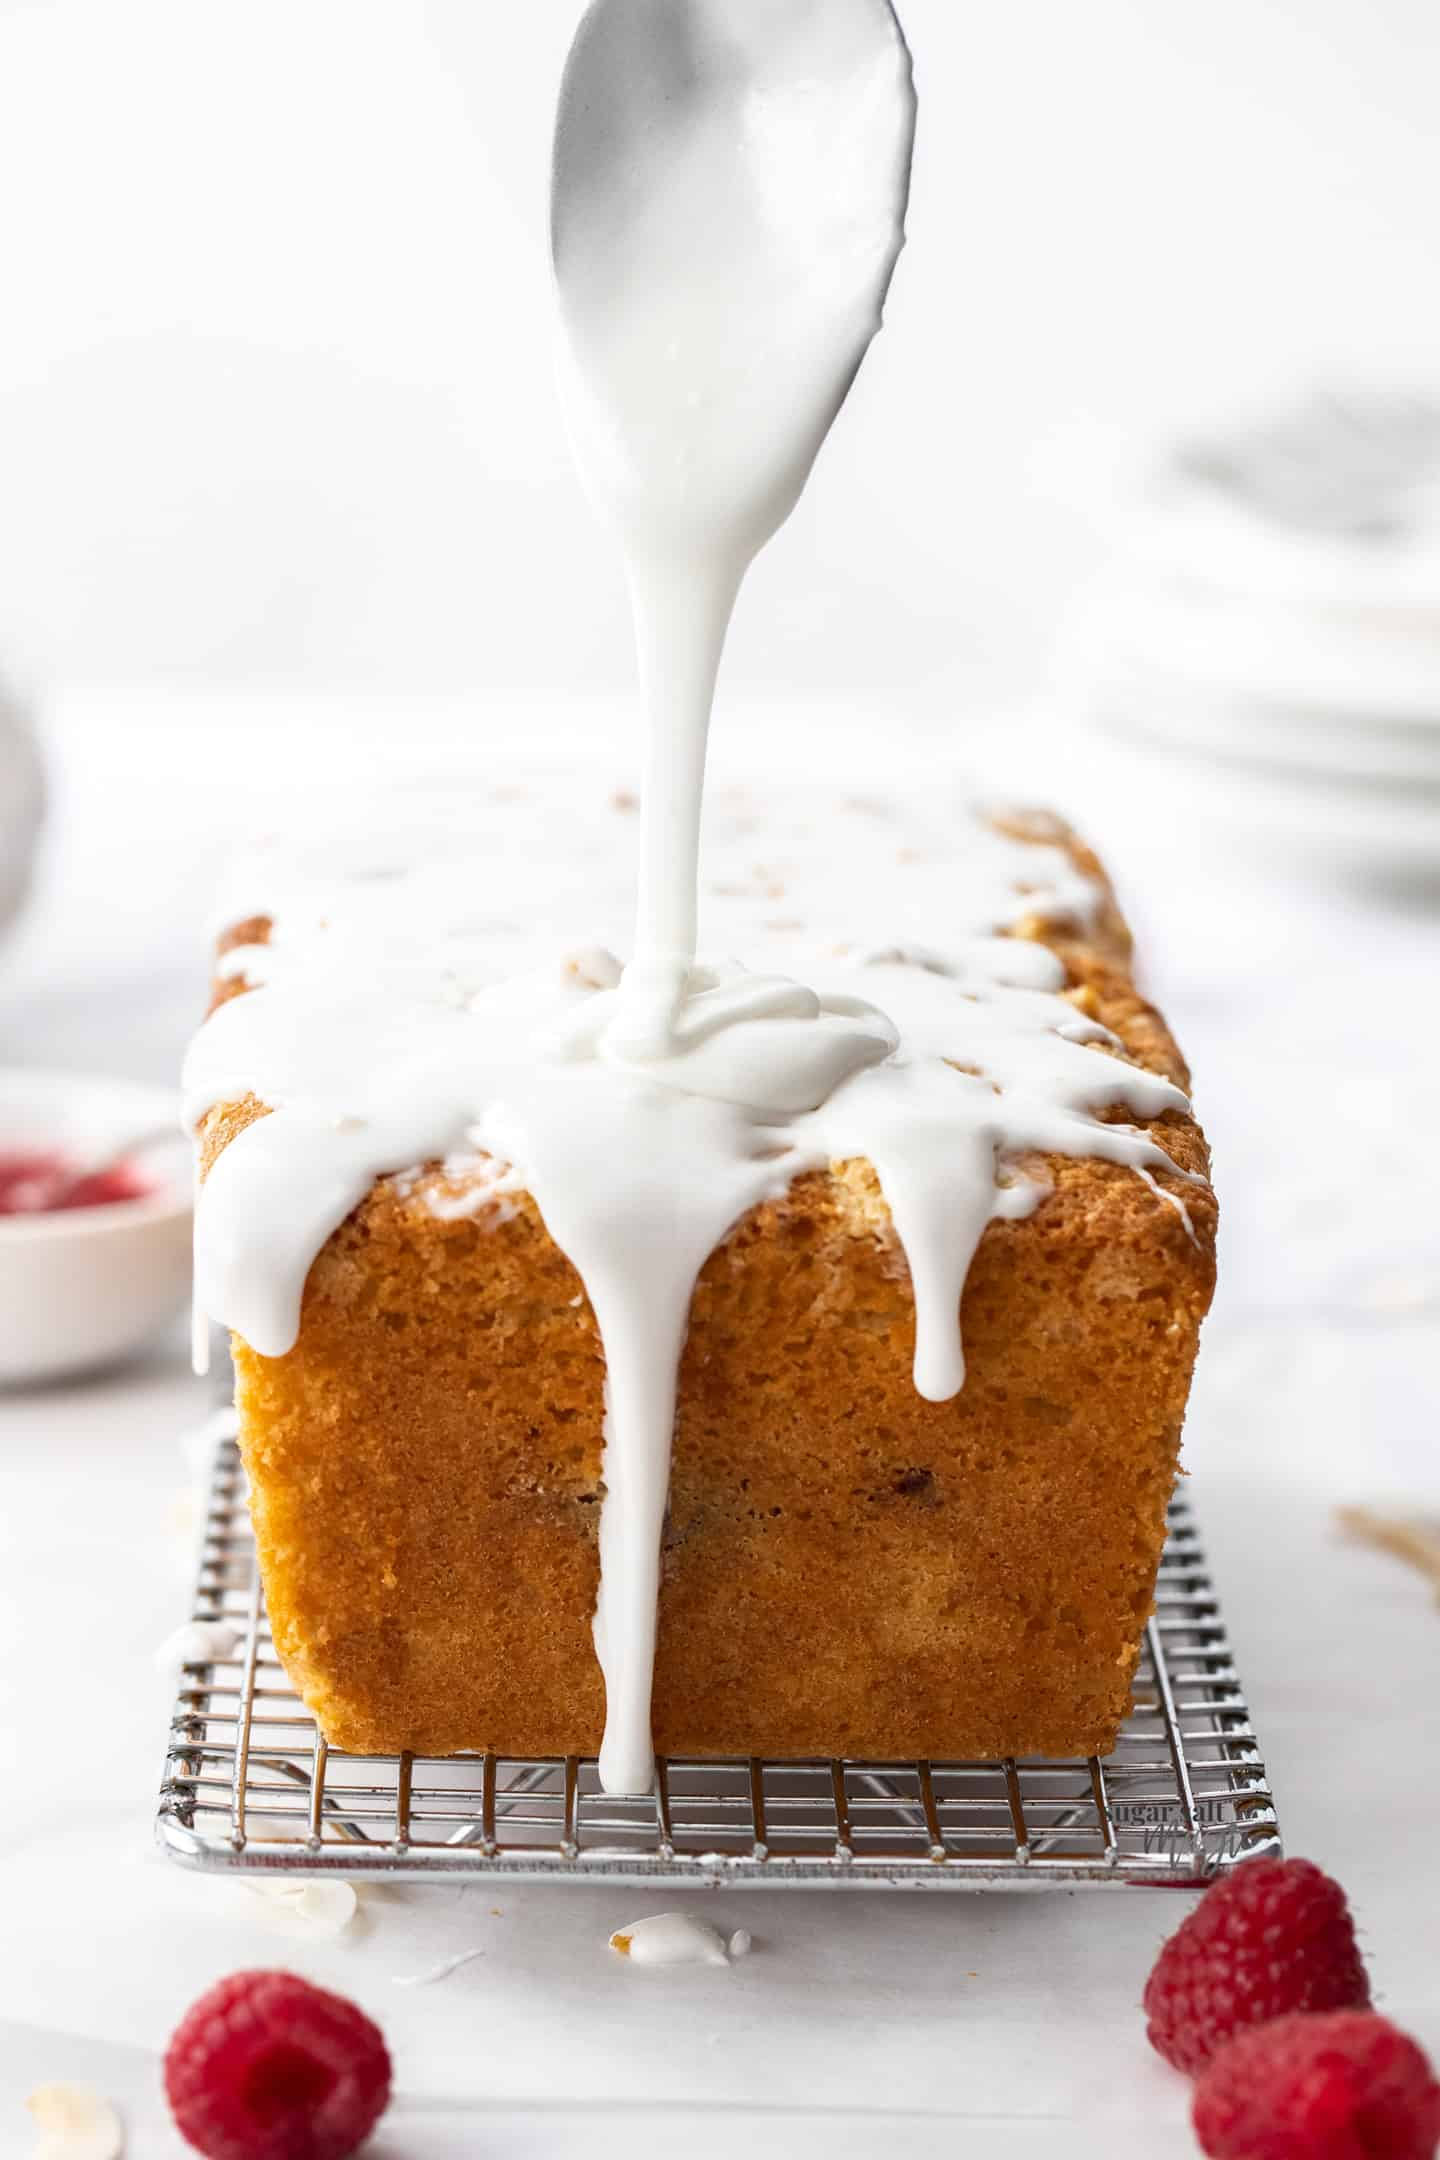 A spoon drizzling white icing directly down onto a coconut loaf cake.